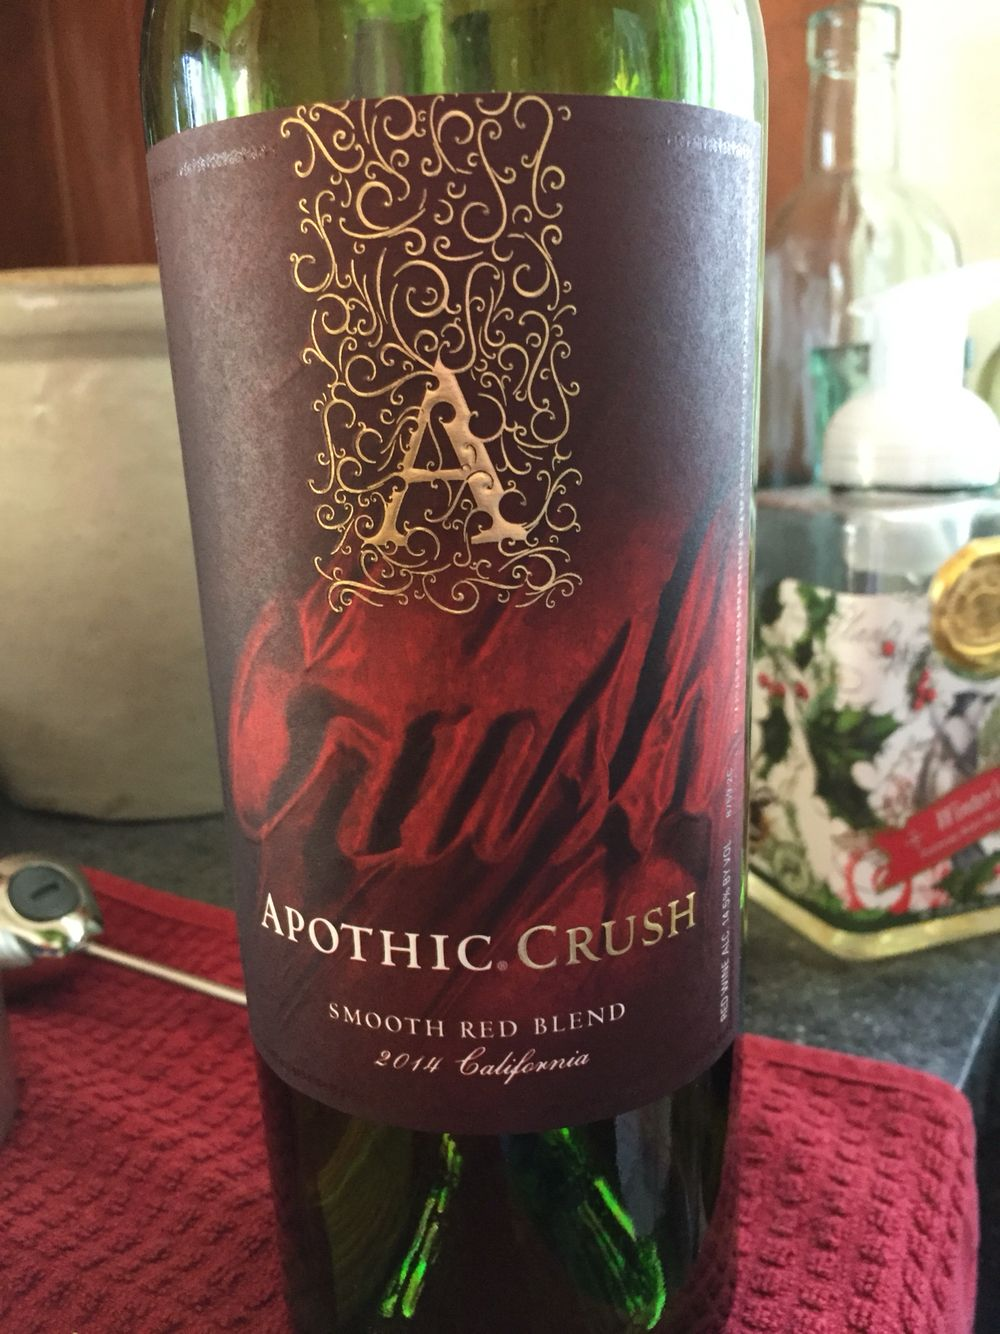 Apothic Crush Smooth Red Blend 2014 Cali Good 7 10 Blend Not Identified Why Now I M Hesitant Wine Down Wine Bottle Wine